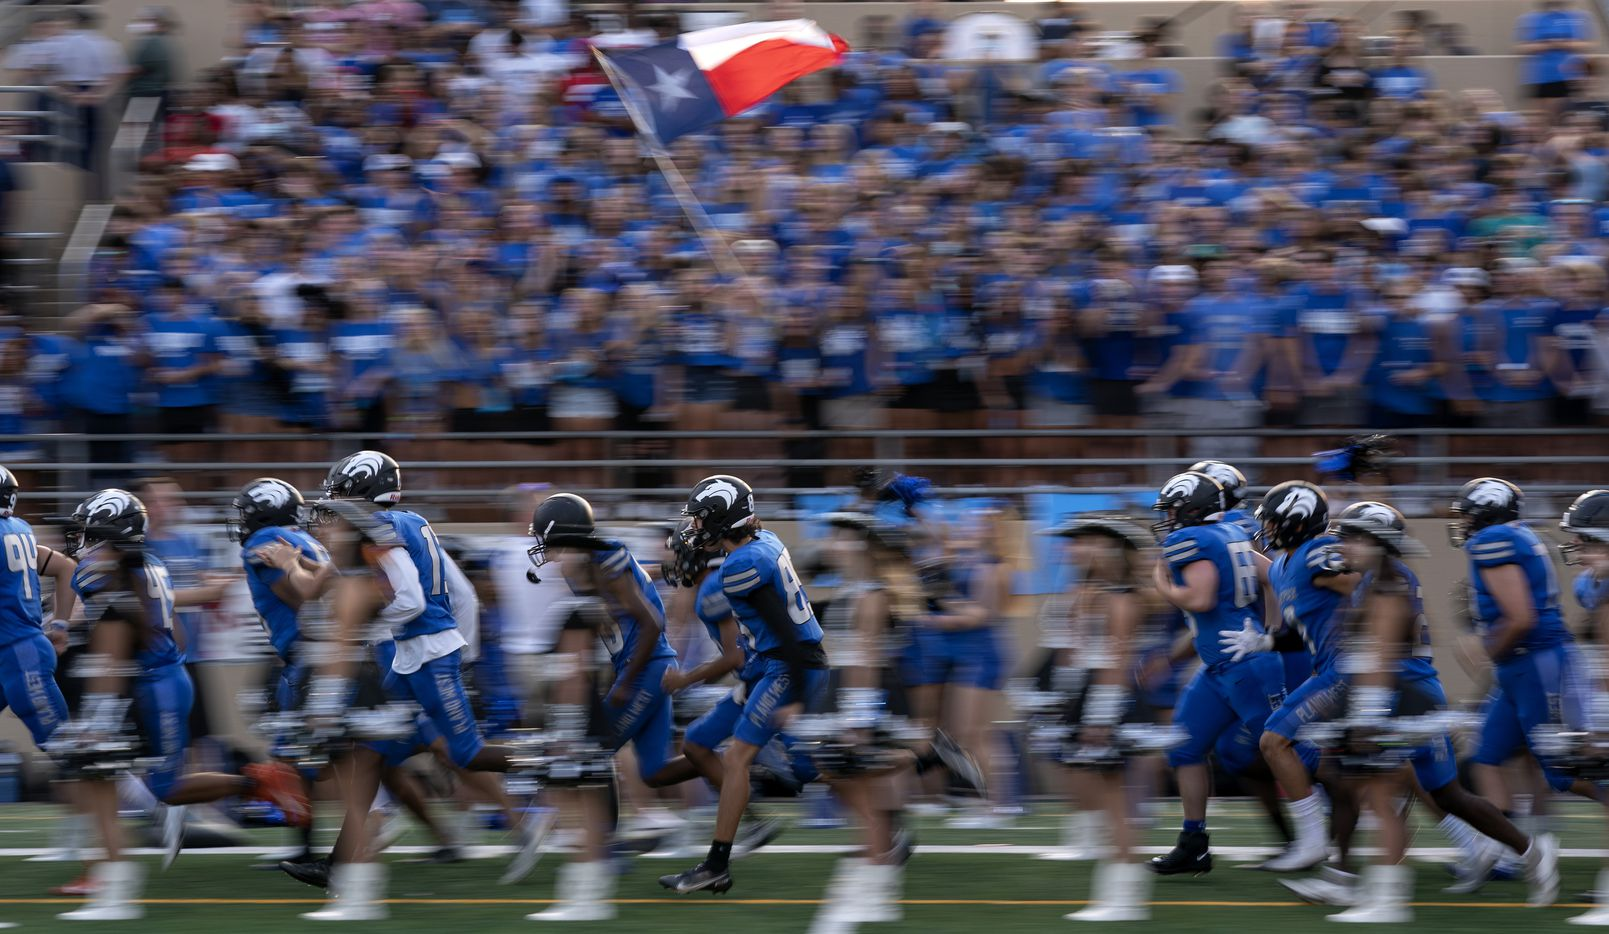 Plano West takes the field before a high school football game against Little Elm on Friday, Sept. 10, 2021 at John Clark Stadium in Plano, Texas. Little Elm won 35-31. (Jeffrey McWhorter/Special Contributor)